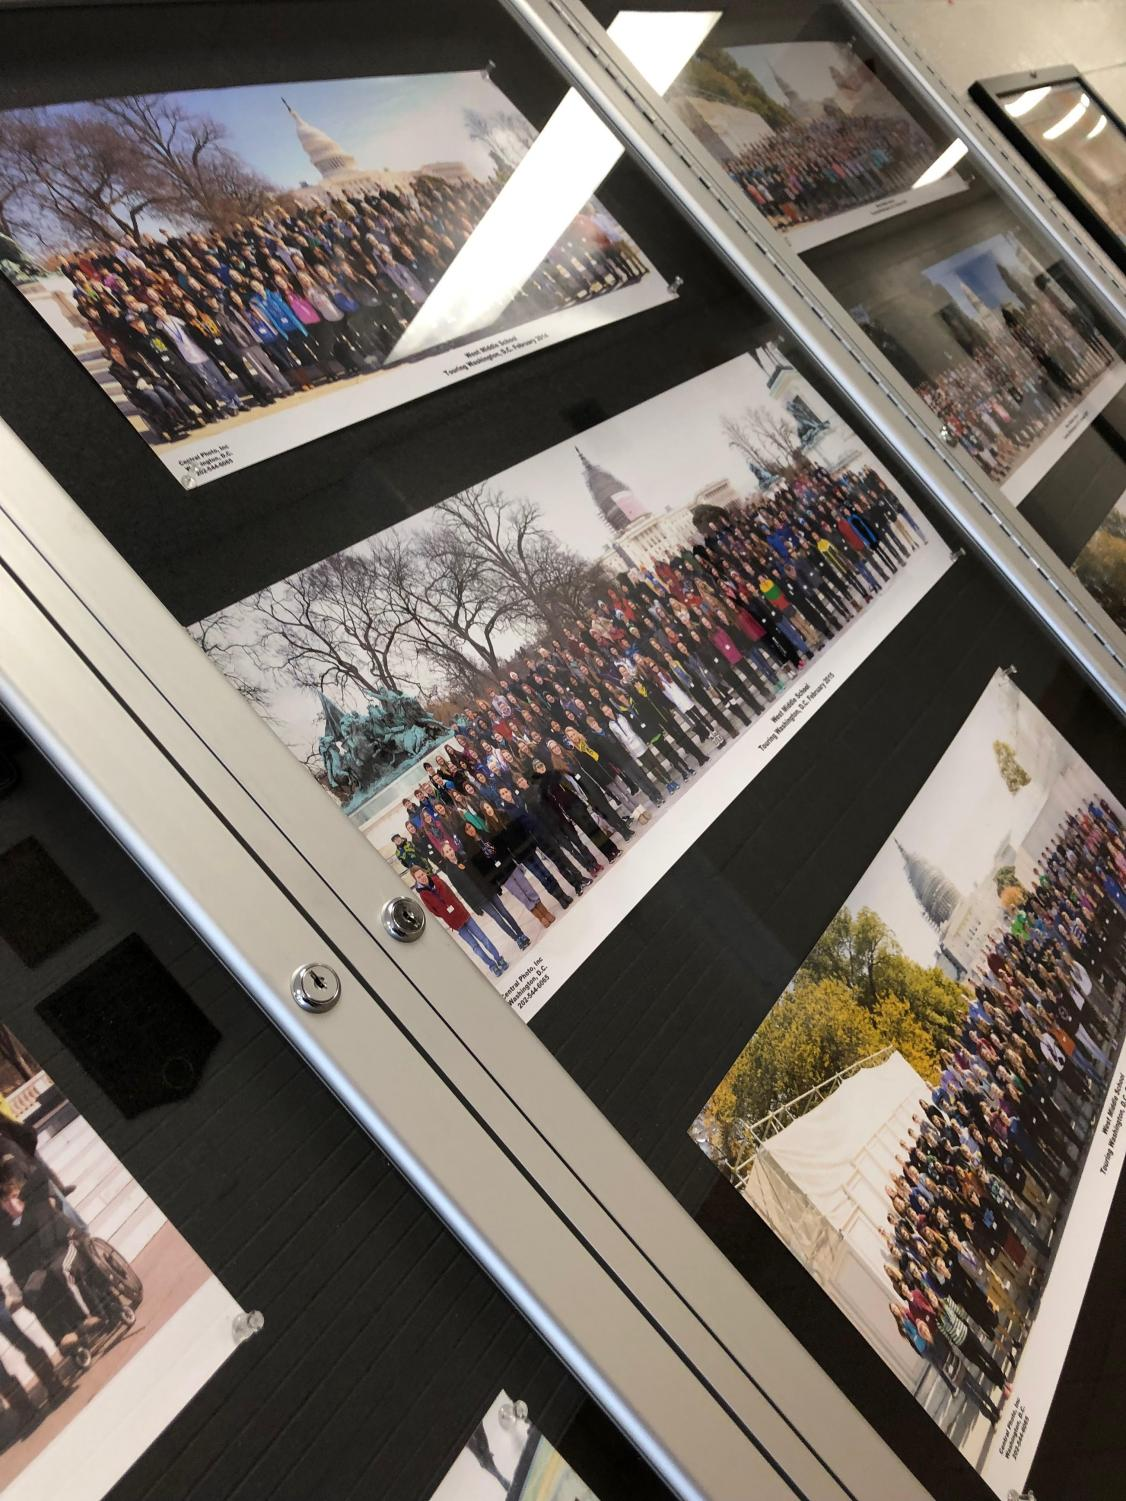 Photographs from previous Washington D.C. trips hanging in the counselor hallway.